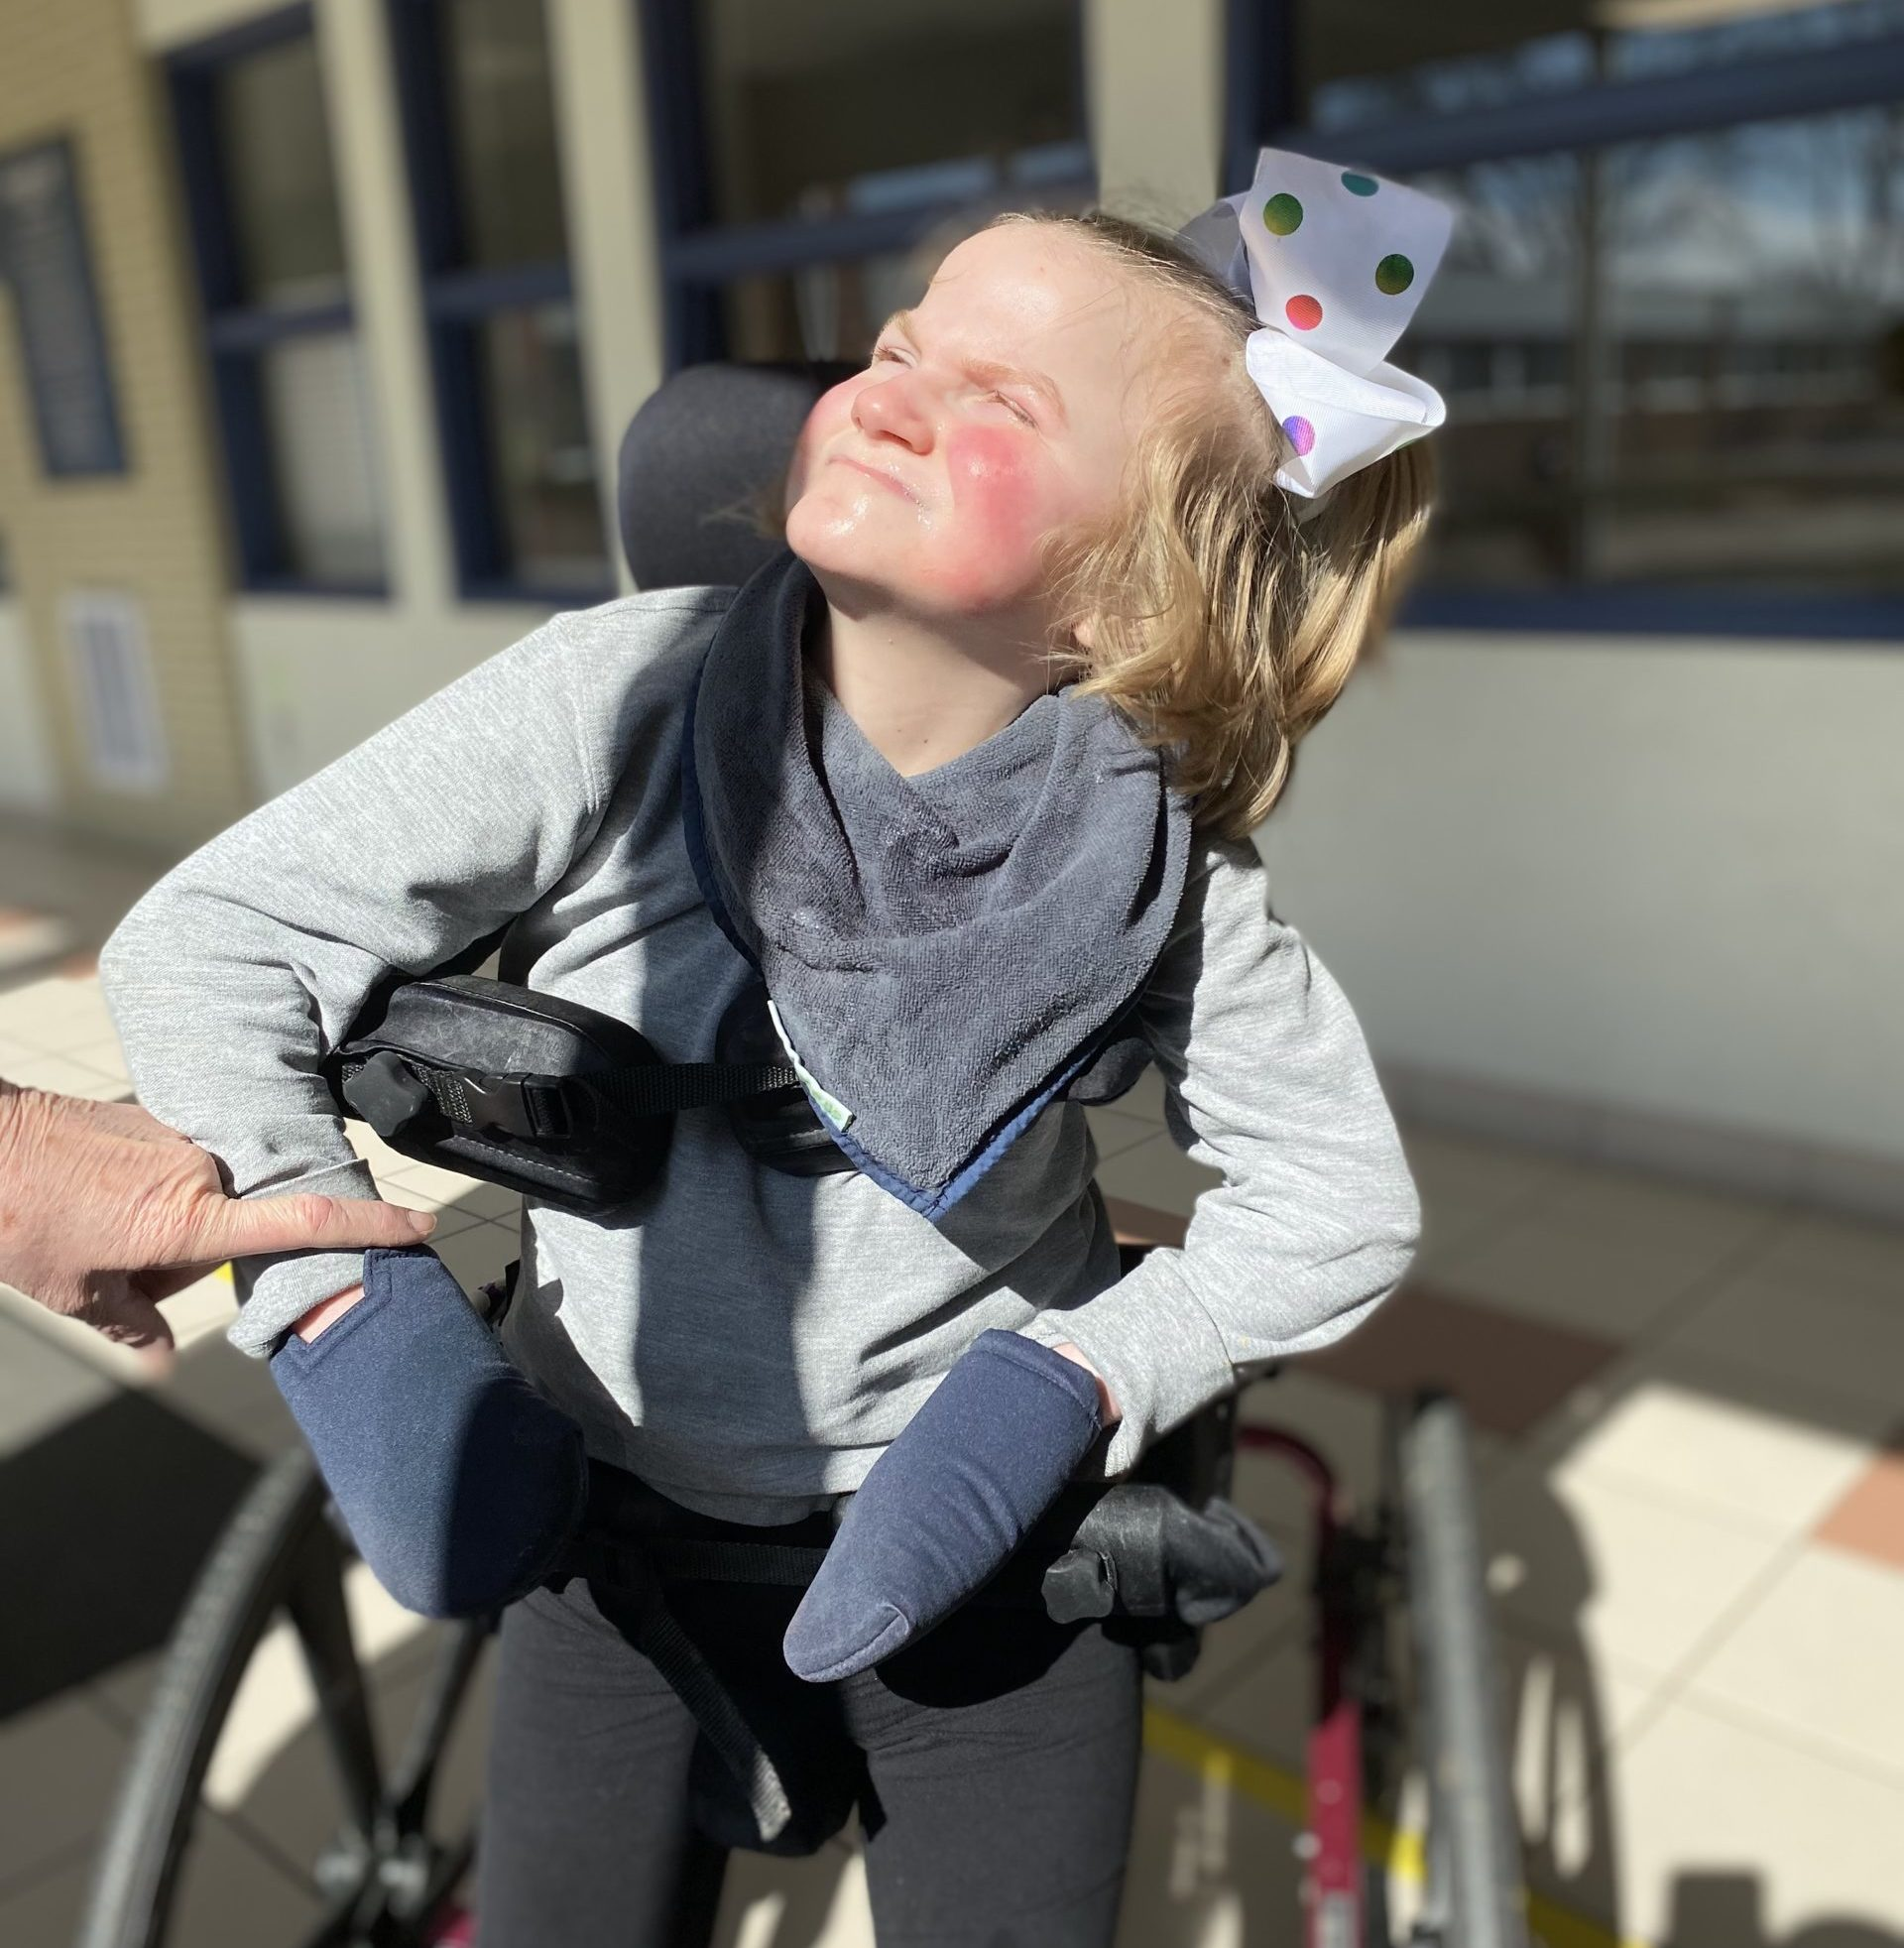 A girl in a wheelchair with her face up towards the sun.